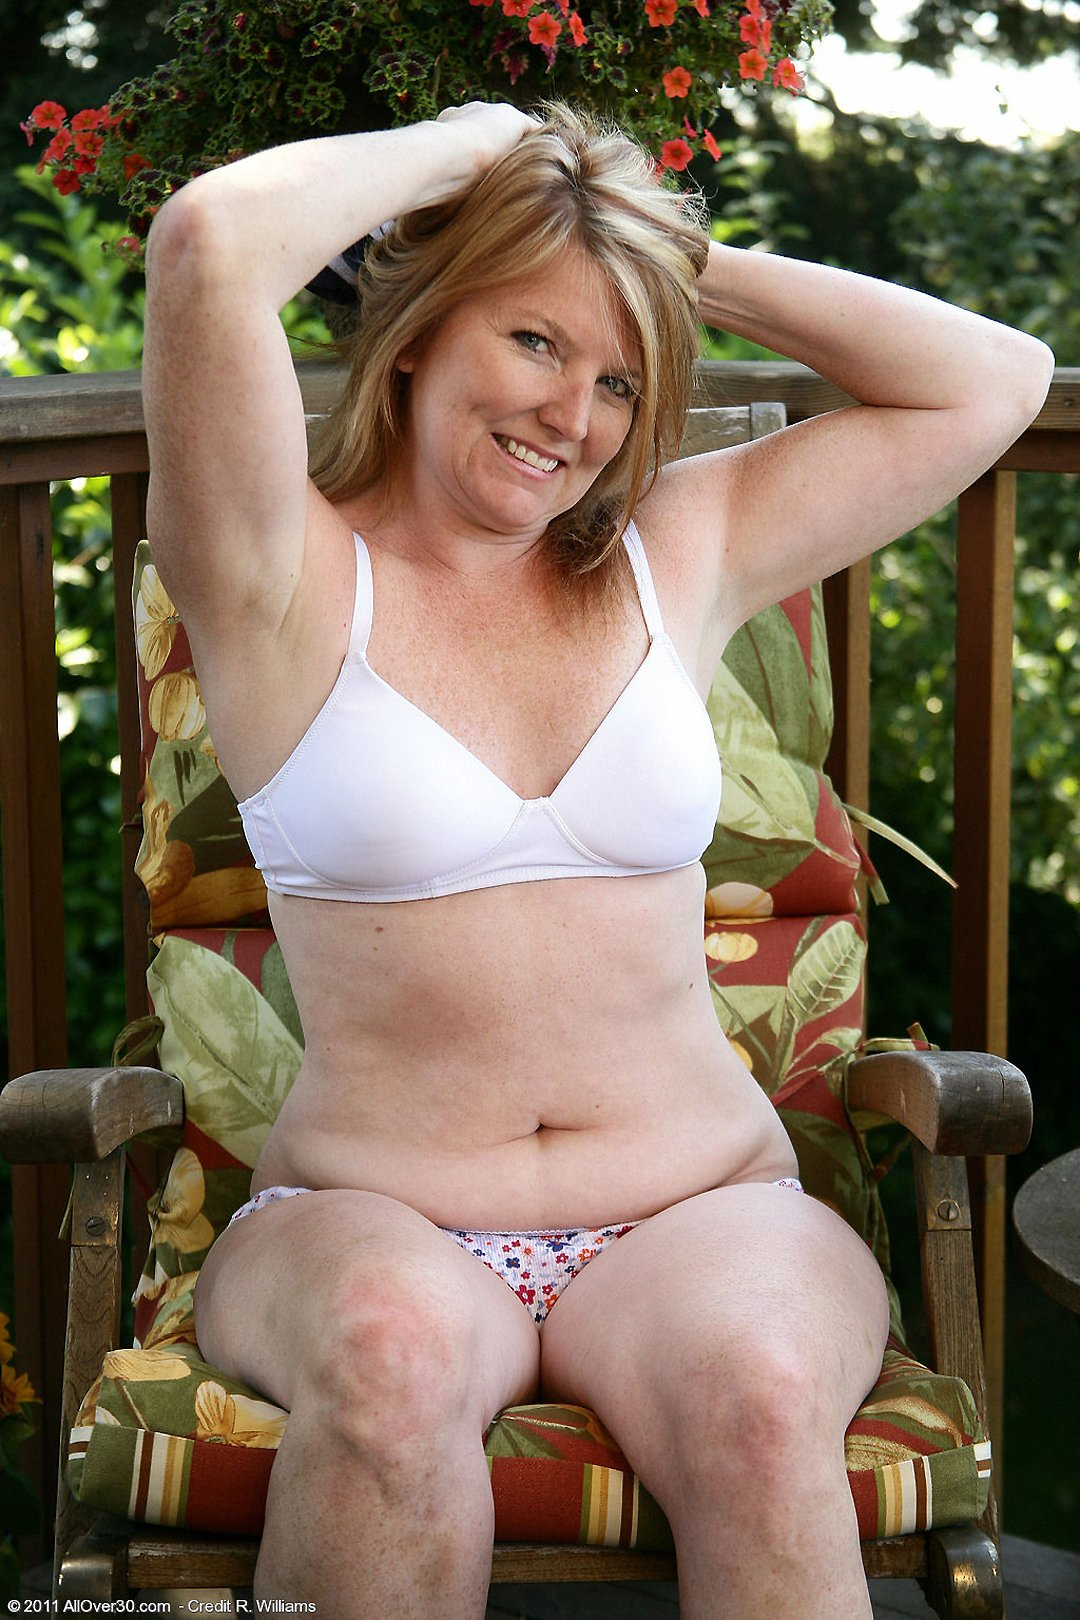 All Over 30 Mature Women - Image 1